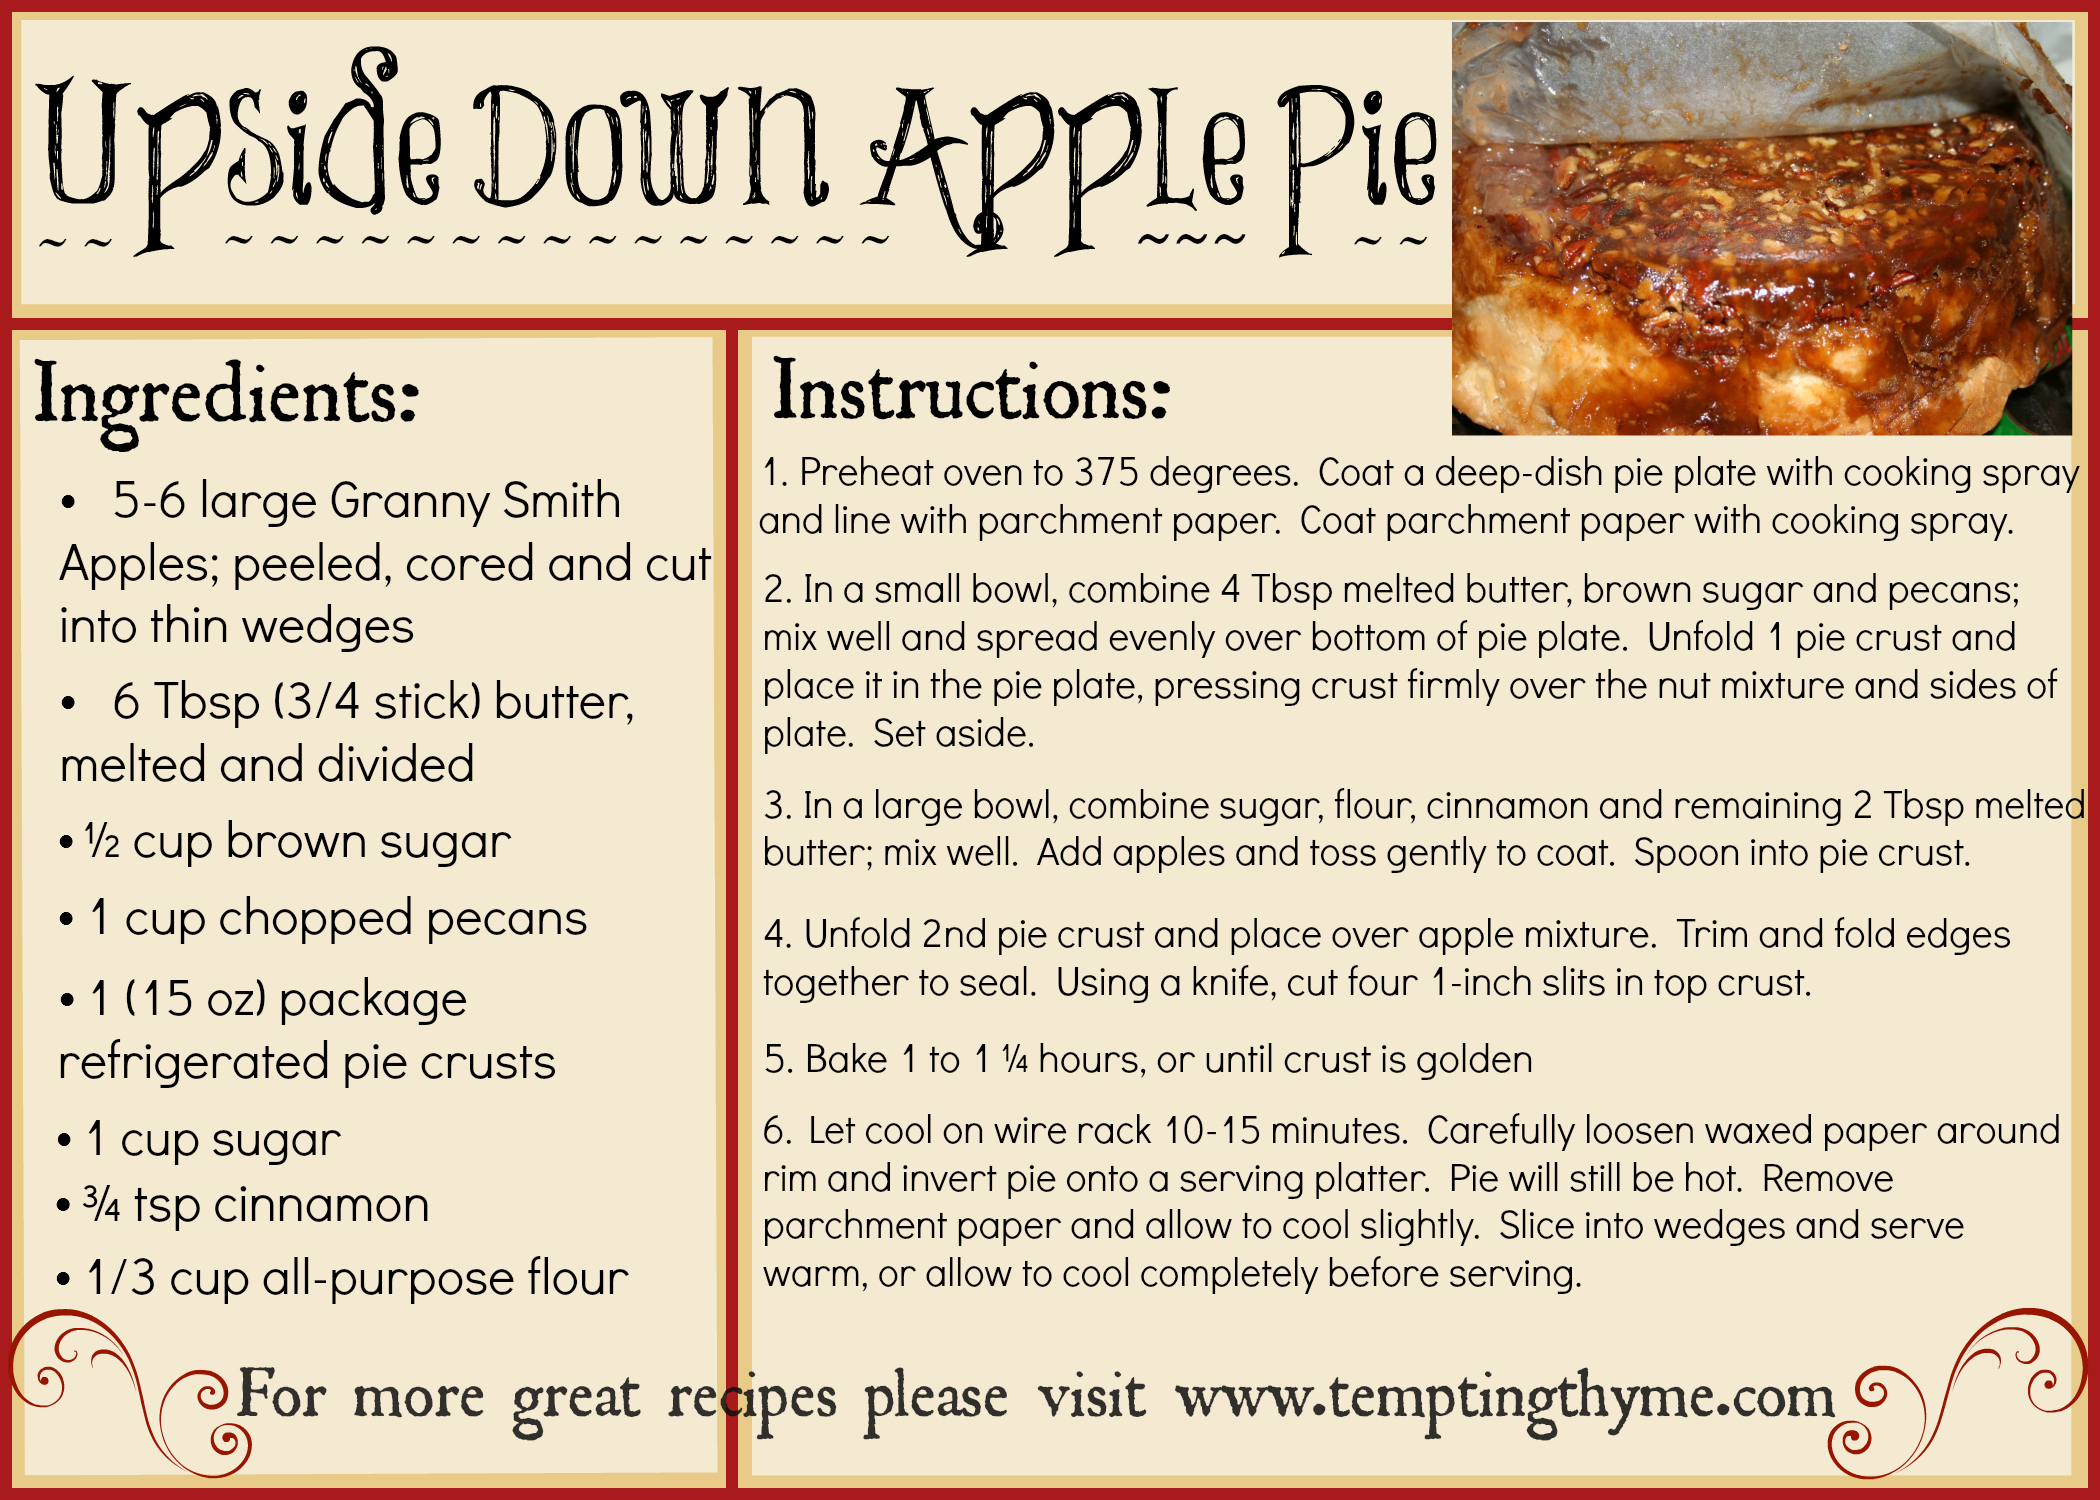 Making Recipe cards using Picmonkey {How To} | tempting thyme